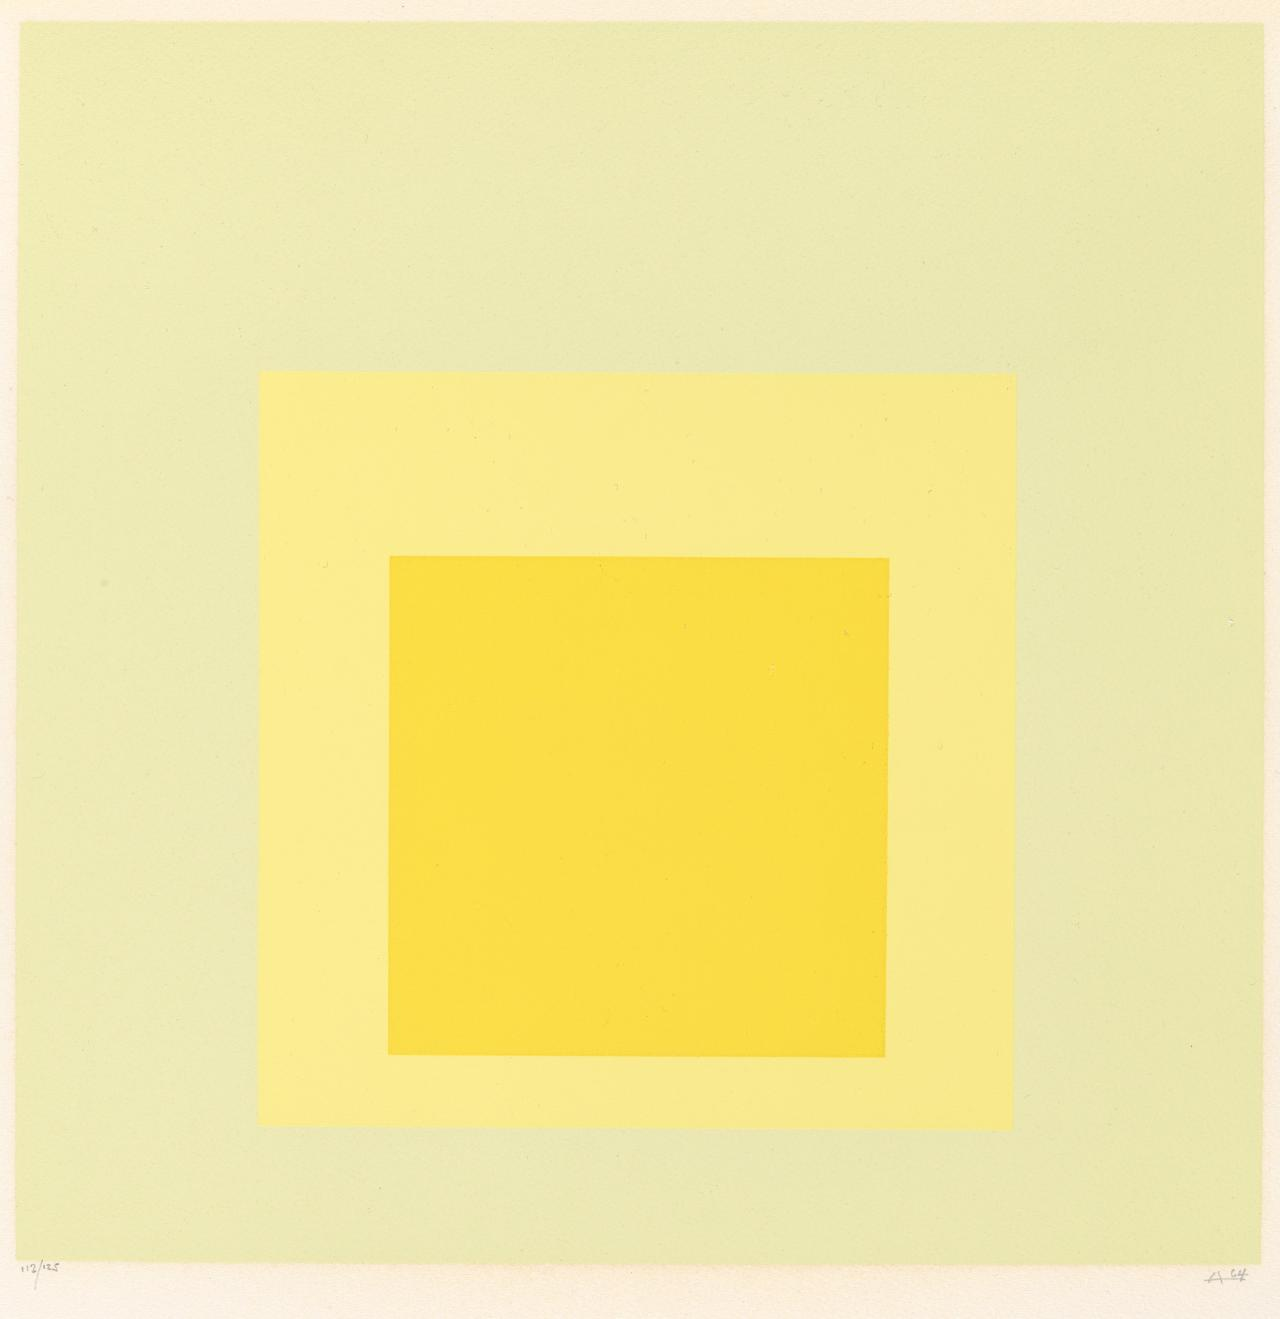 (Homage to the Square)